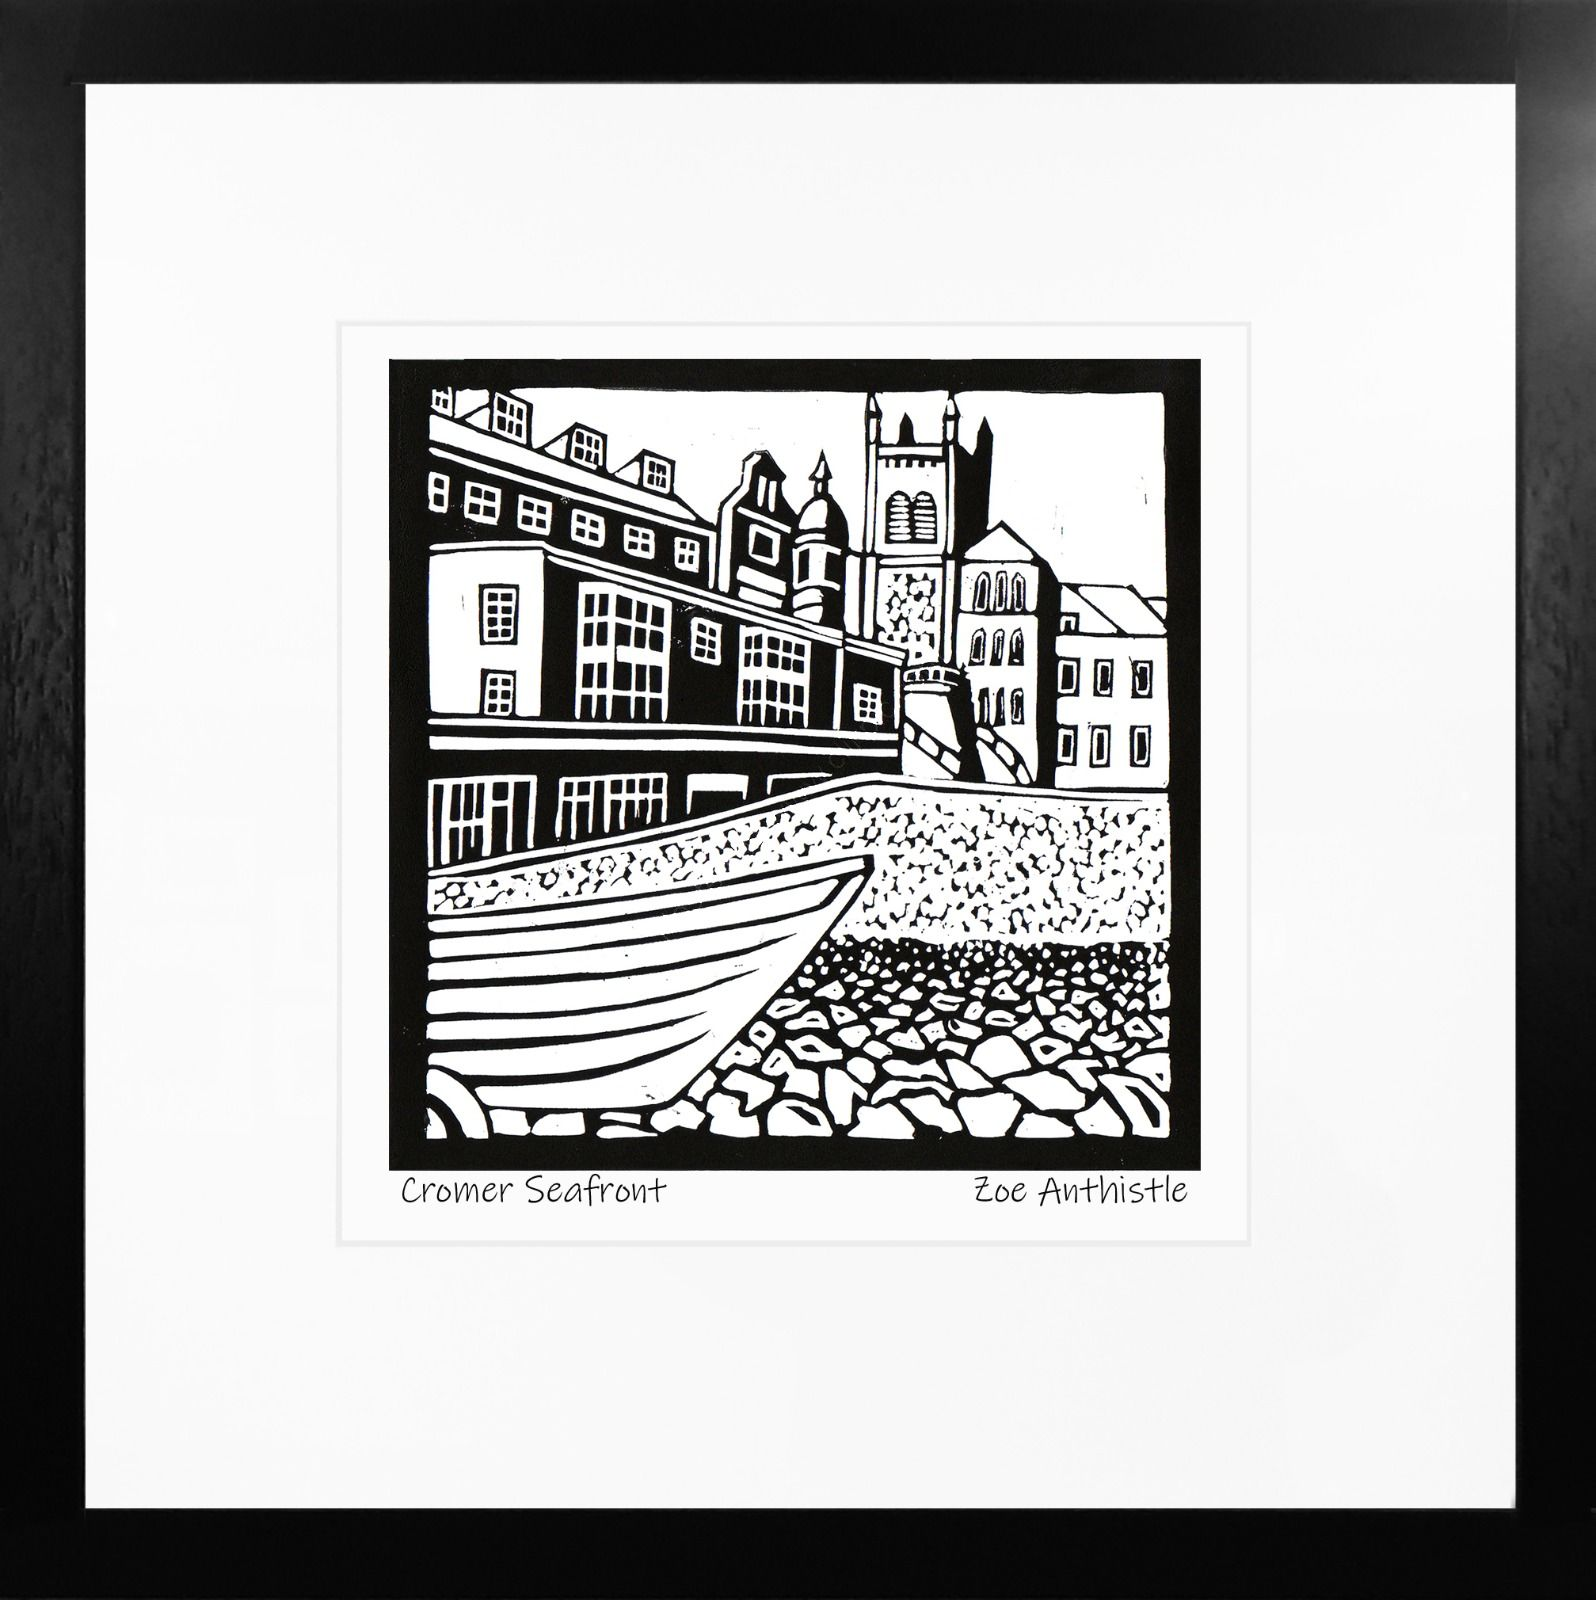 'Cromer Seafront'